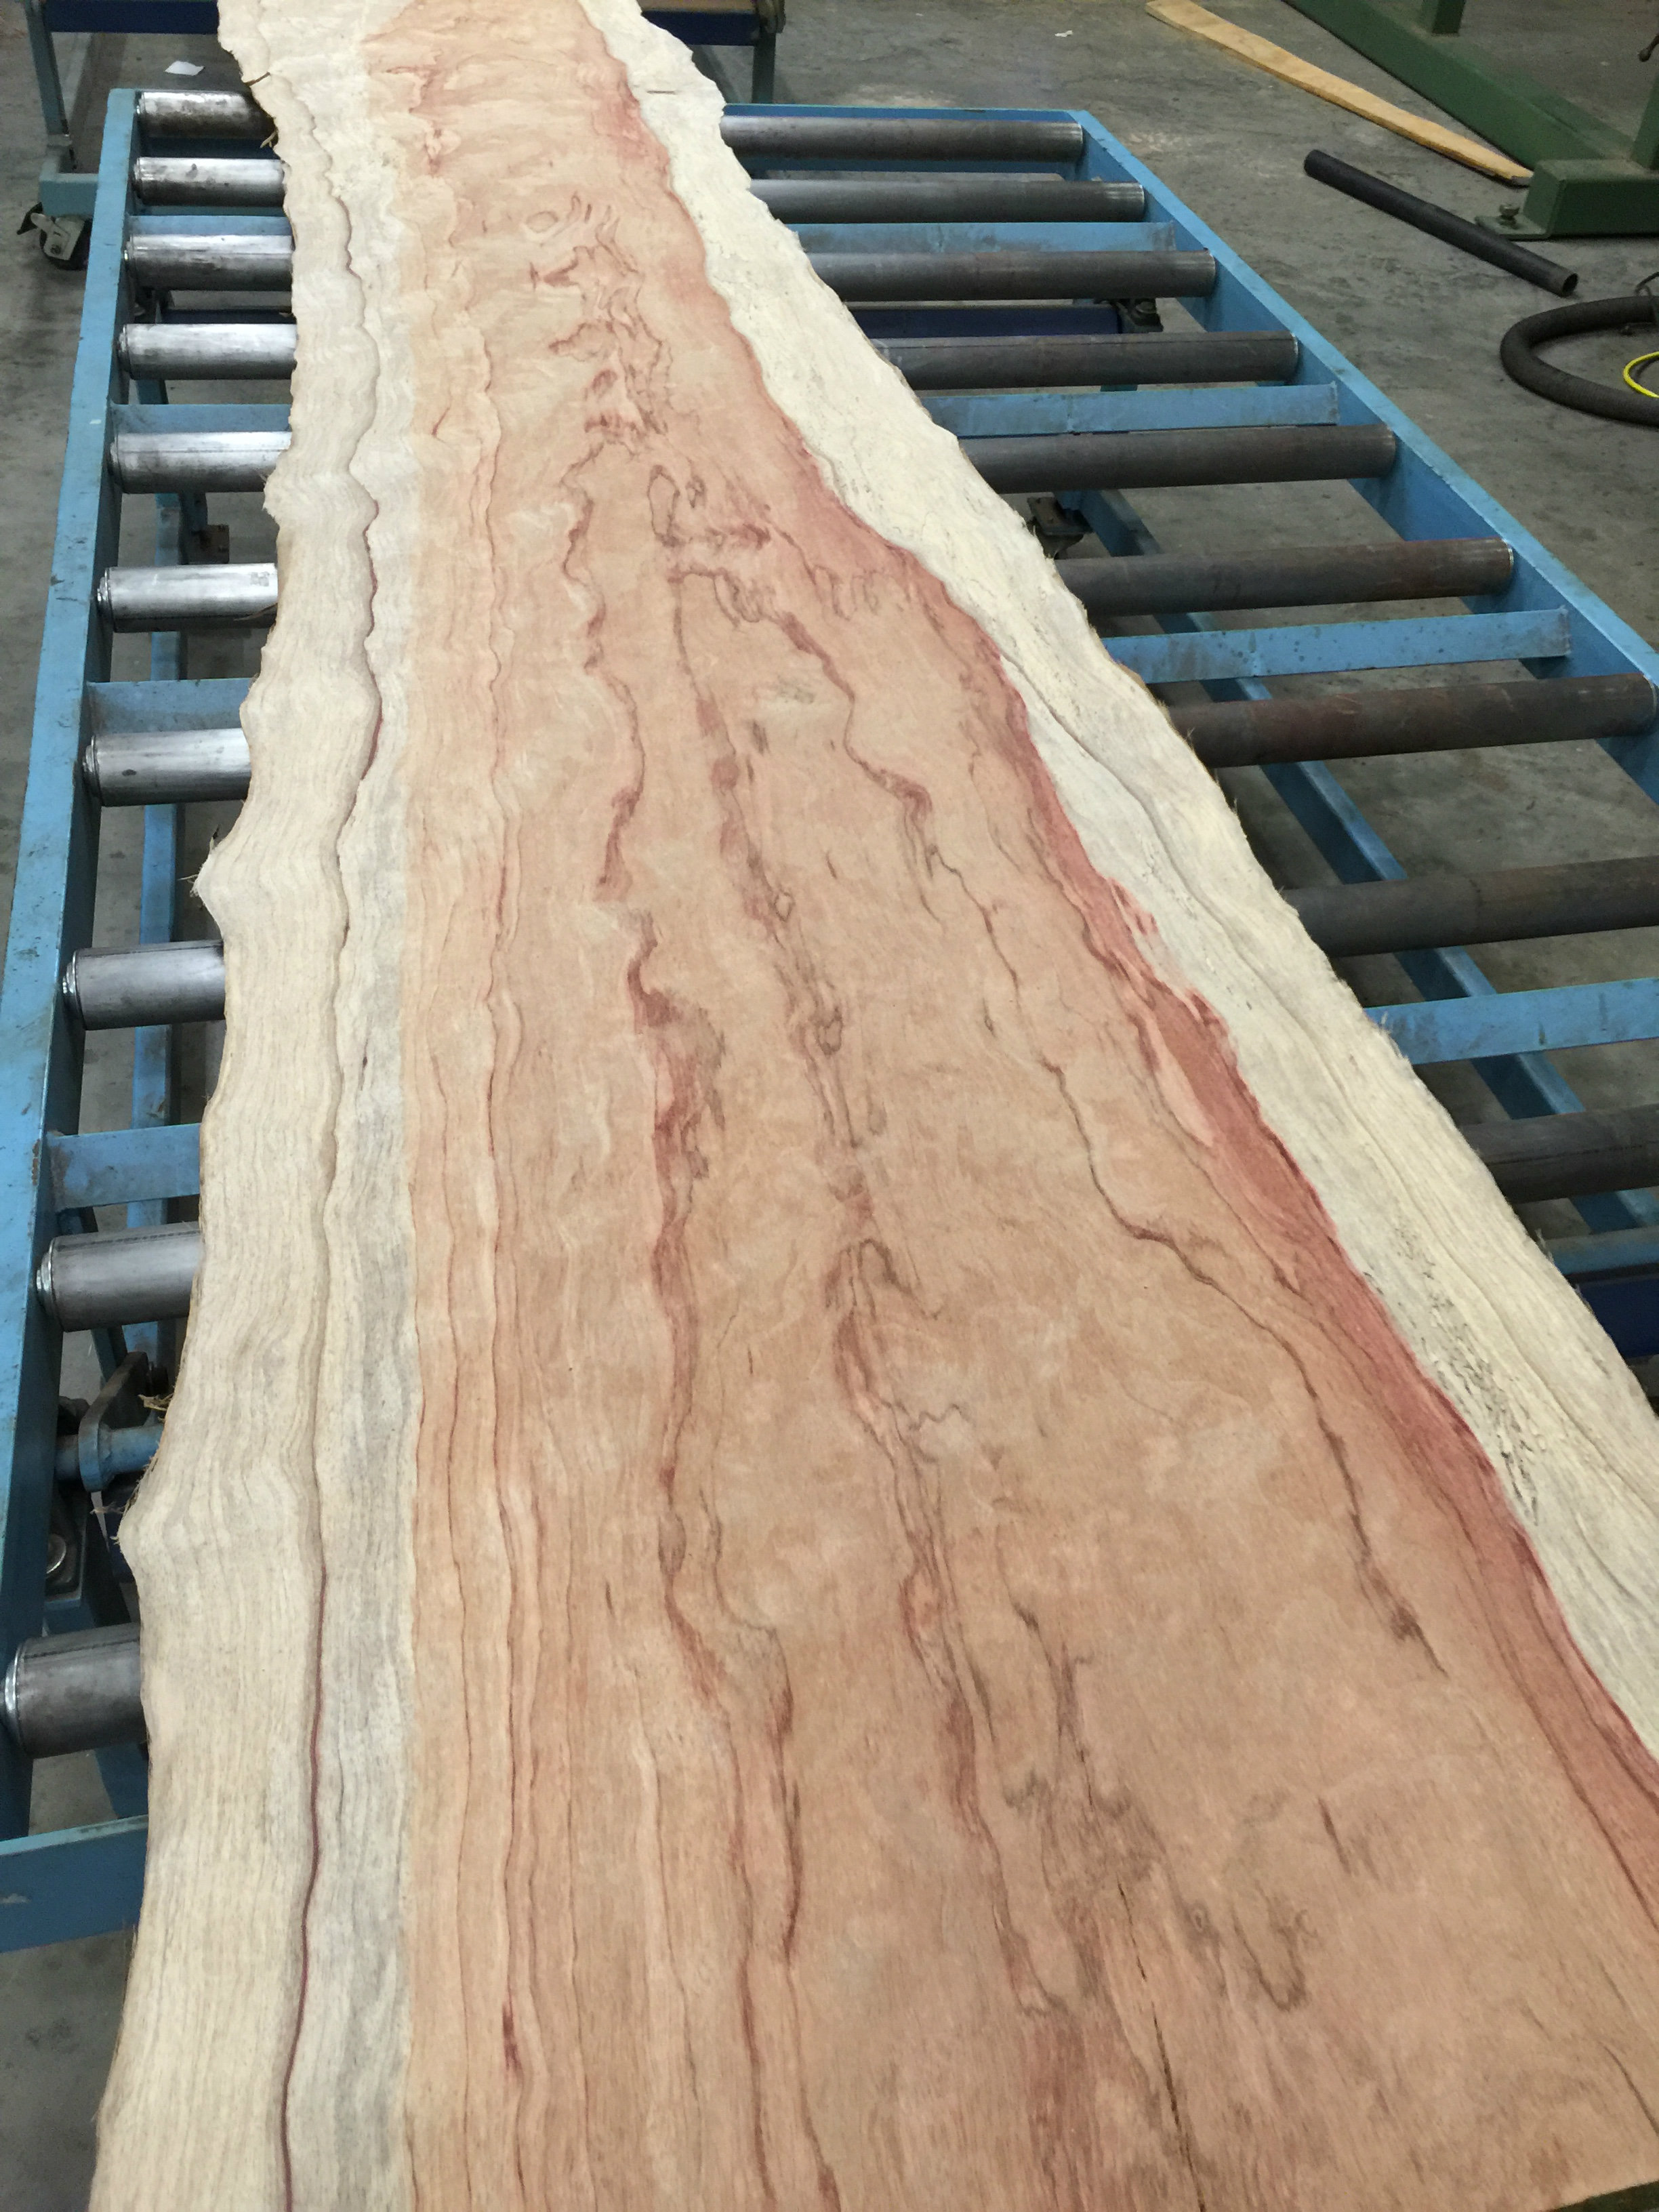 img-4350-unfinished-bubinga-slab.jpg